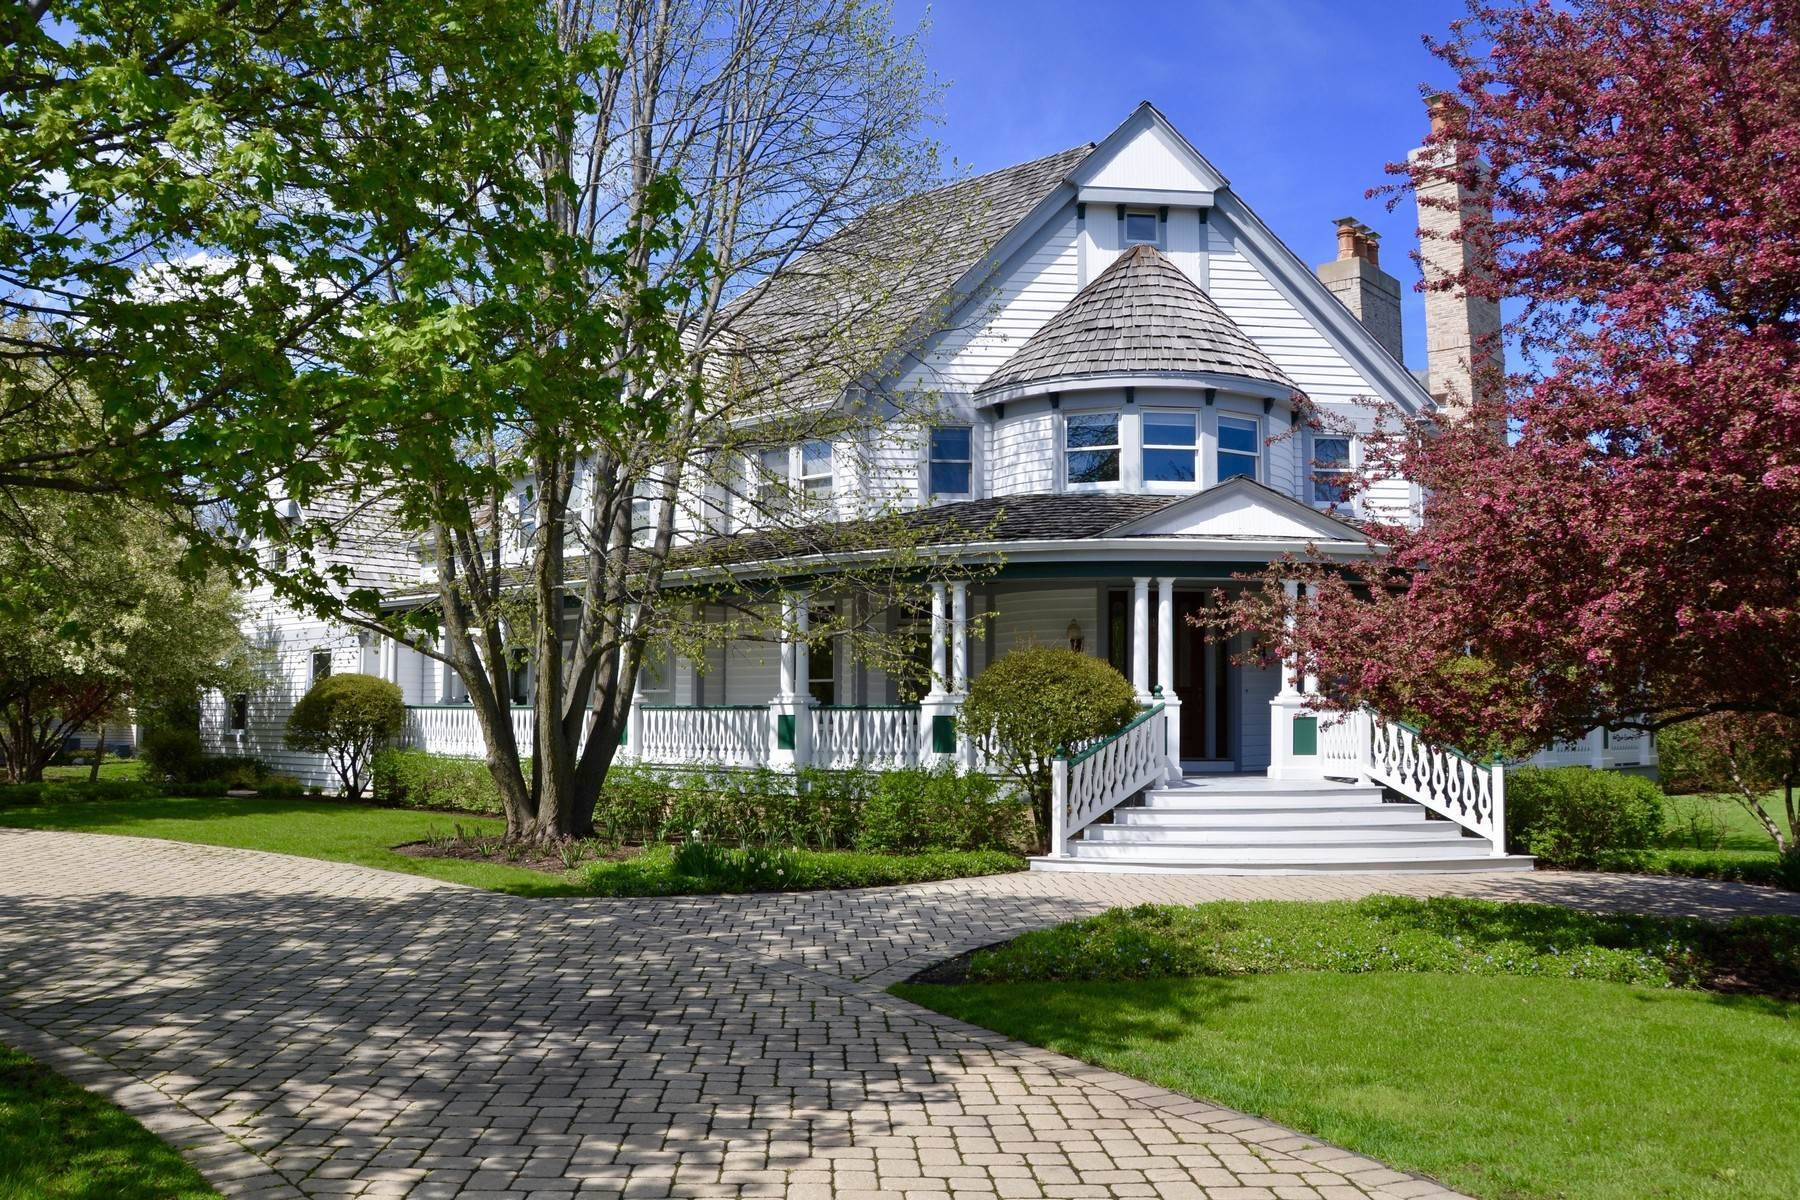 Single Family Homes for Active at A true classic Victorian 22 S Wynstone Drive North Barrington, Illinois 60010 United States